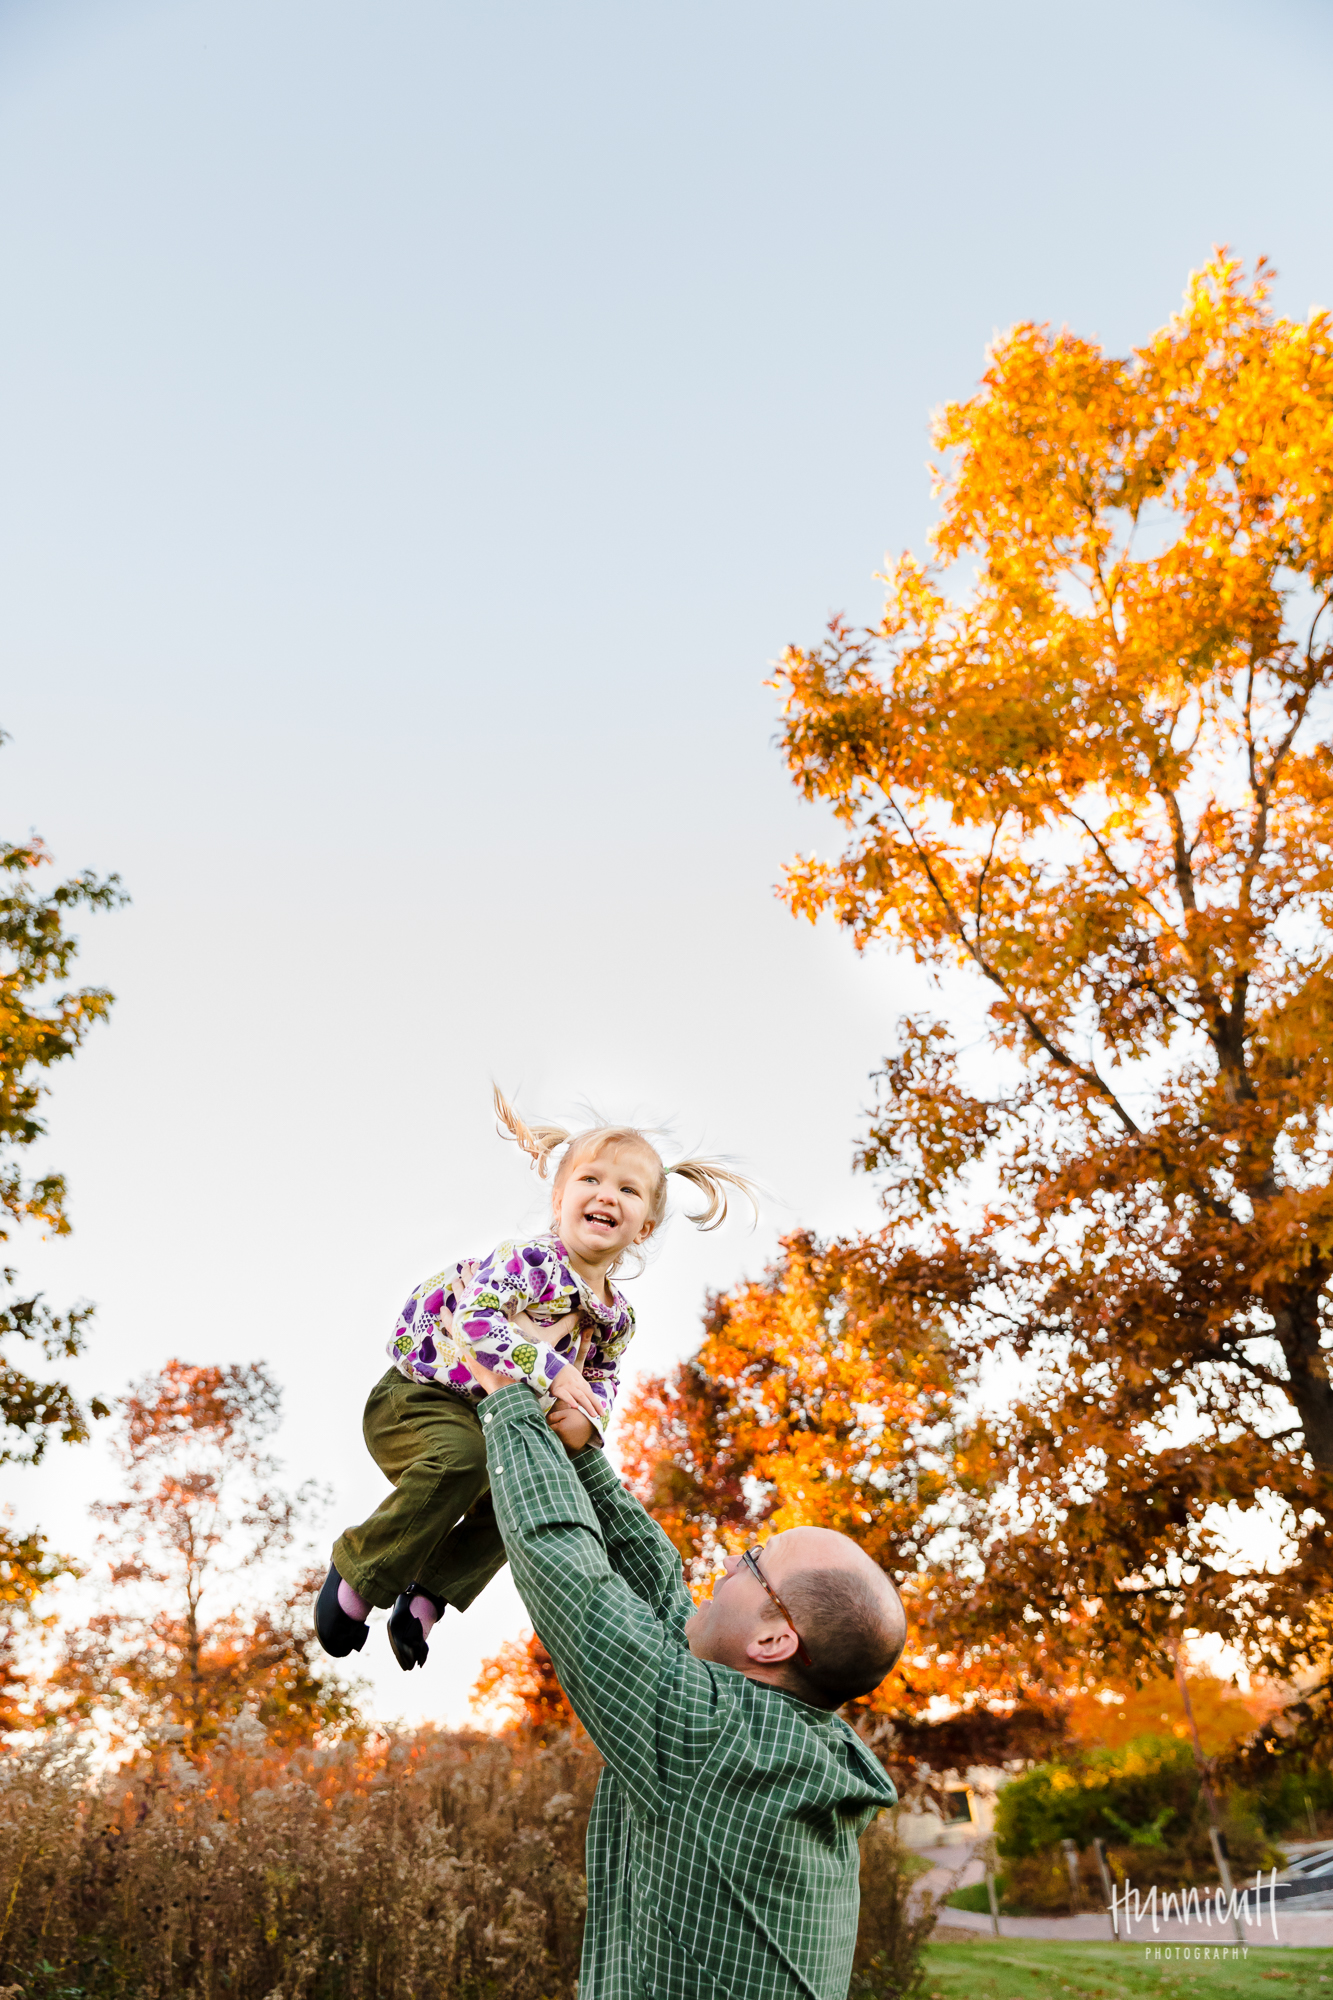 Outdoor-Park-Family-Hunnicutt-Photography-Rebecca-Hunnicutt-Farren-USA-12